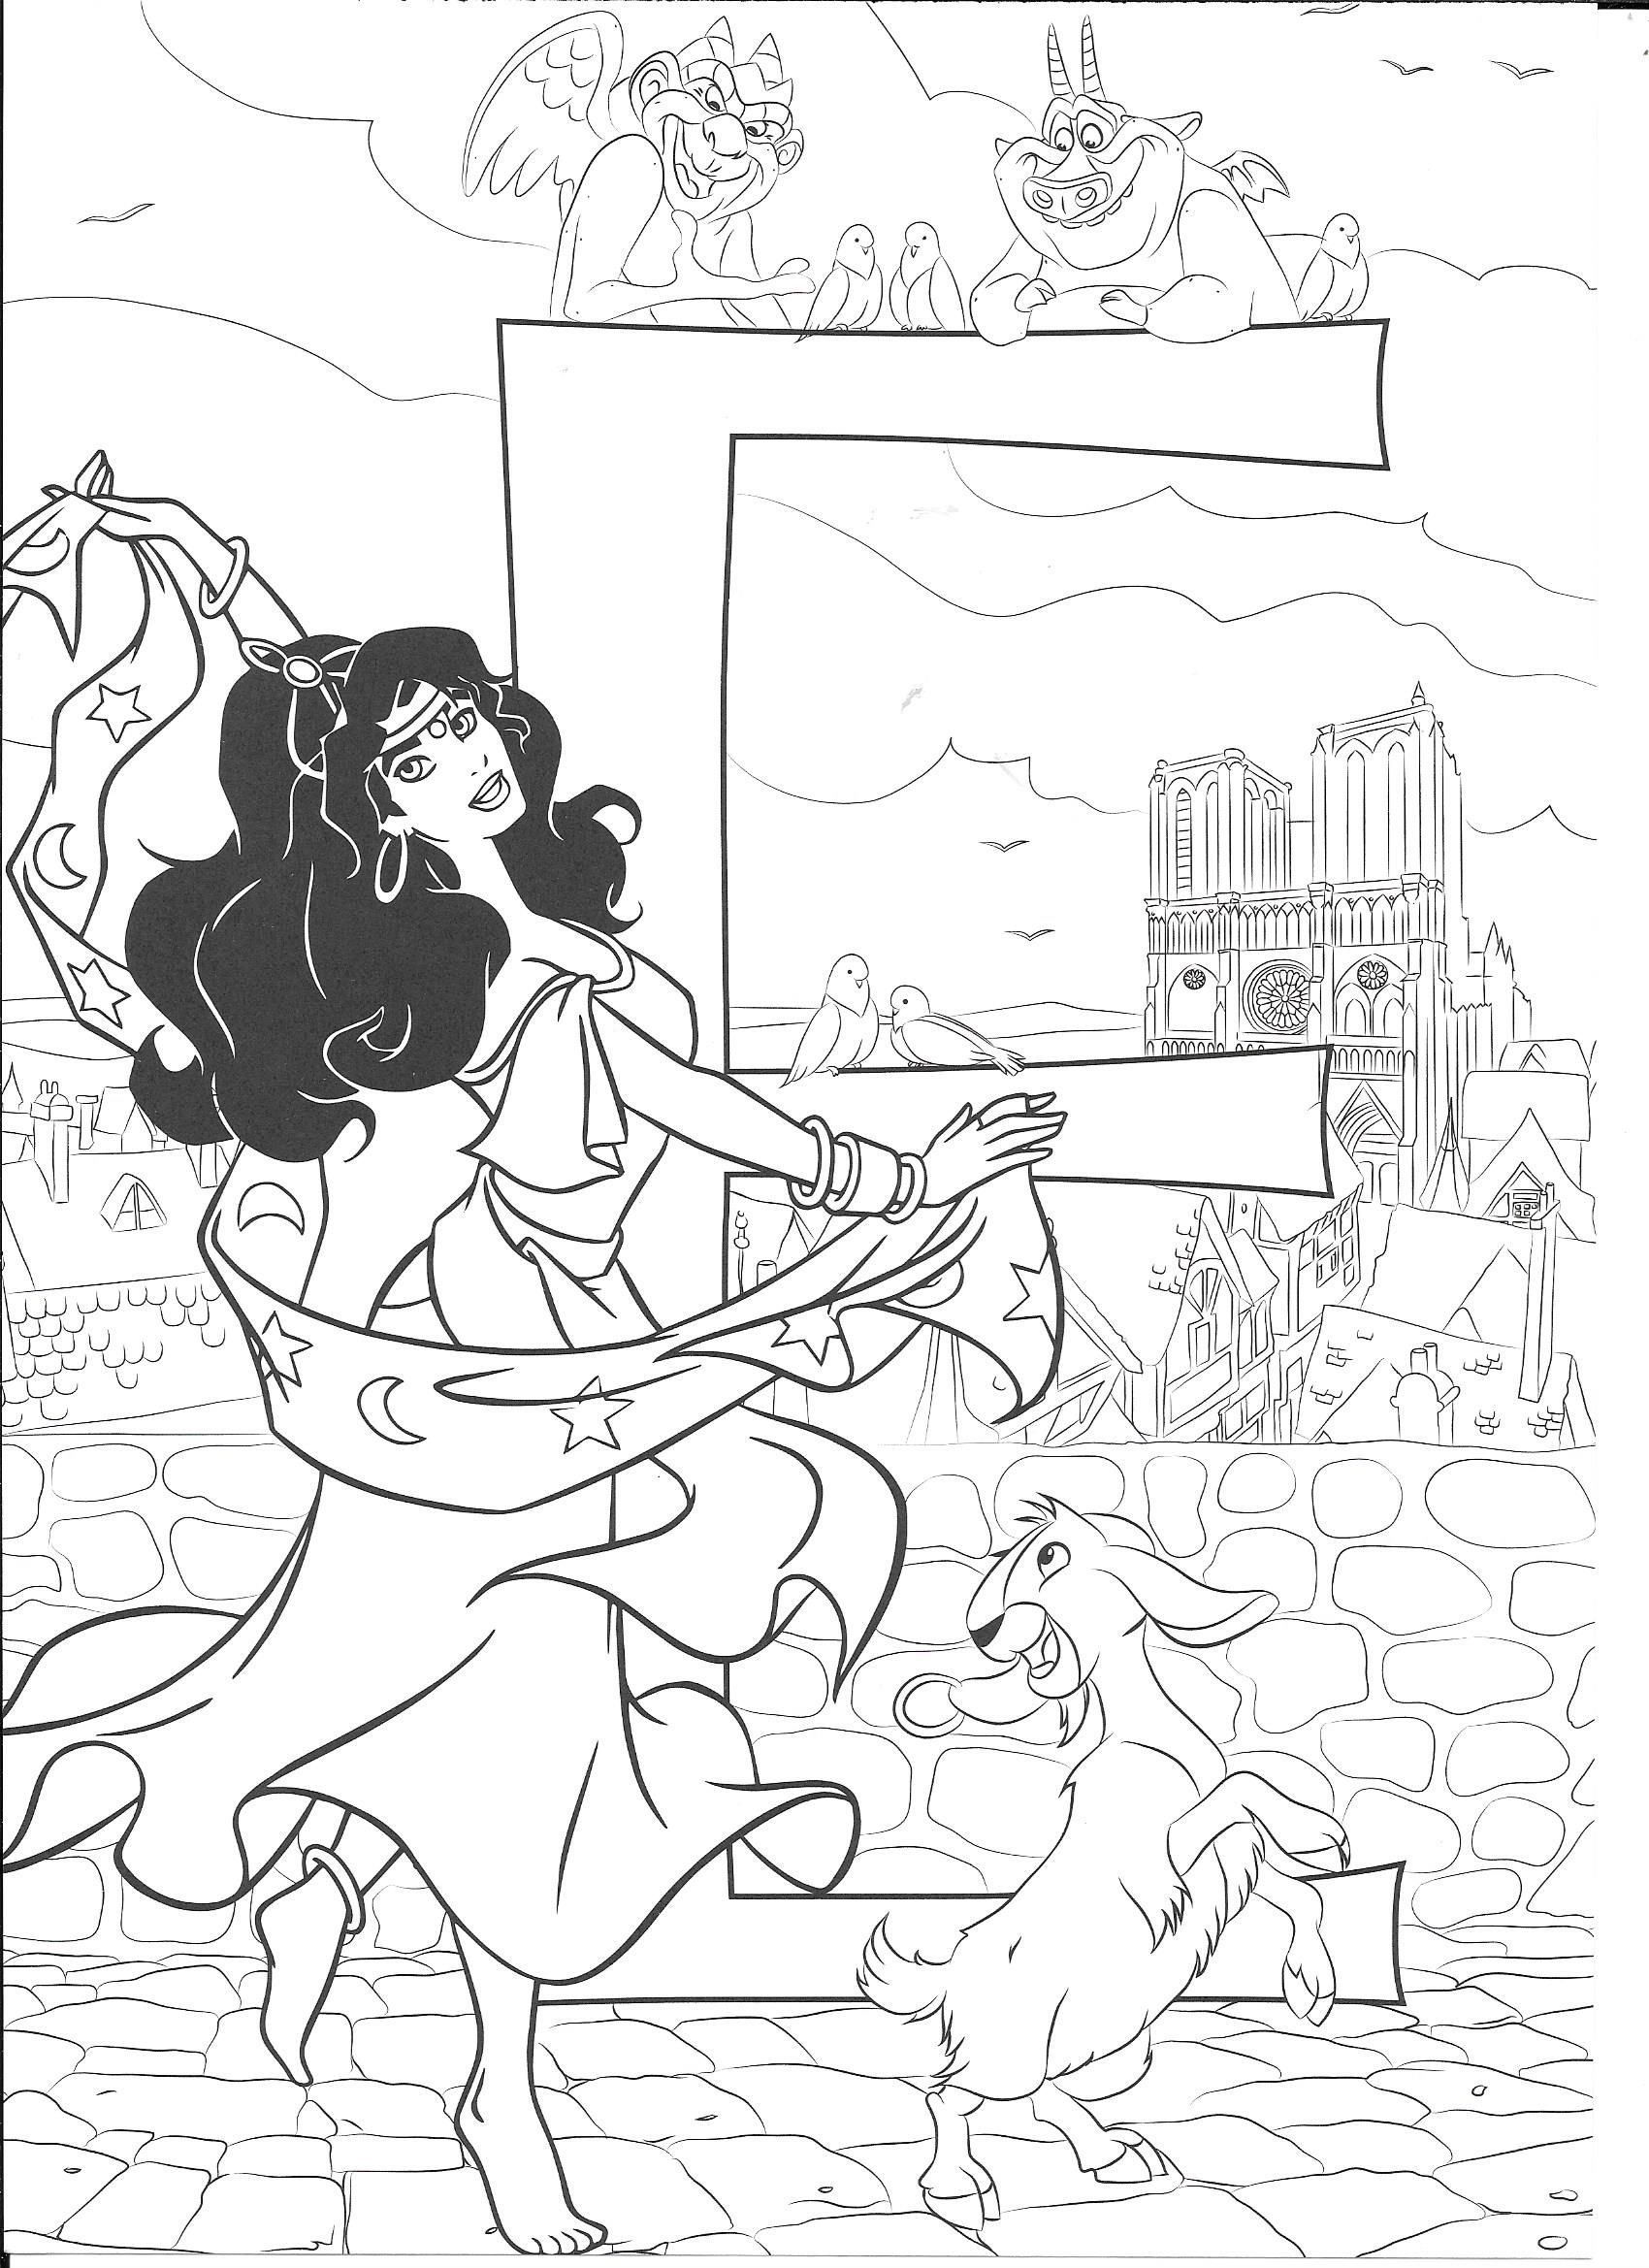 Pin By Shelby Ludlum On Disney Coloring Pages Abc Coloring Pages Disney Coloring Sheets Disney Coloring Pages